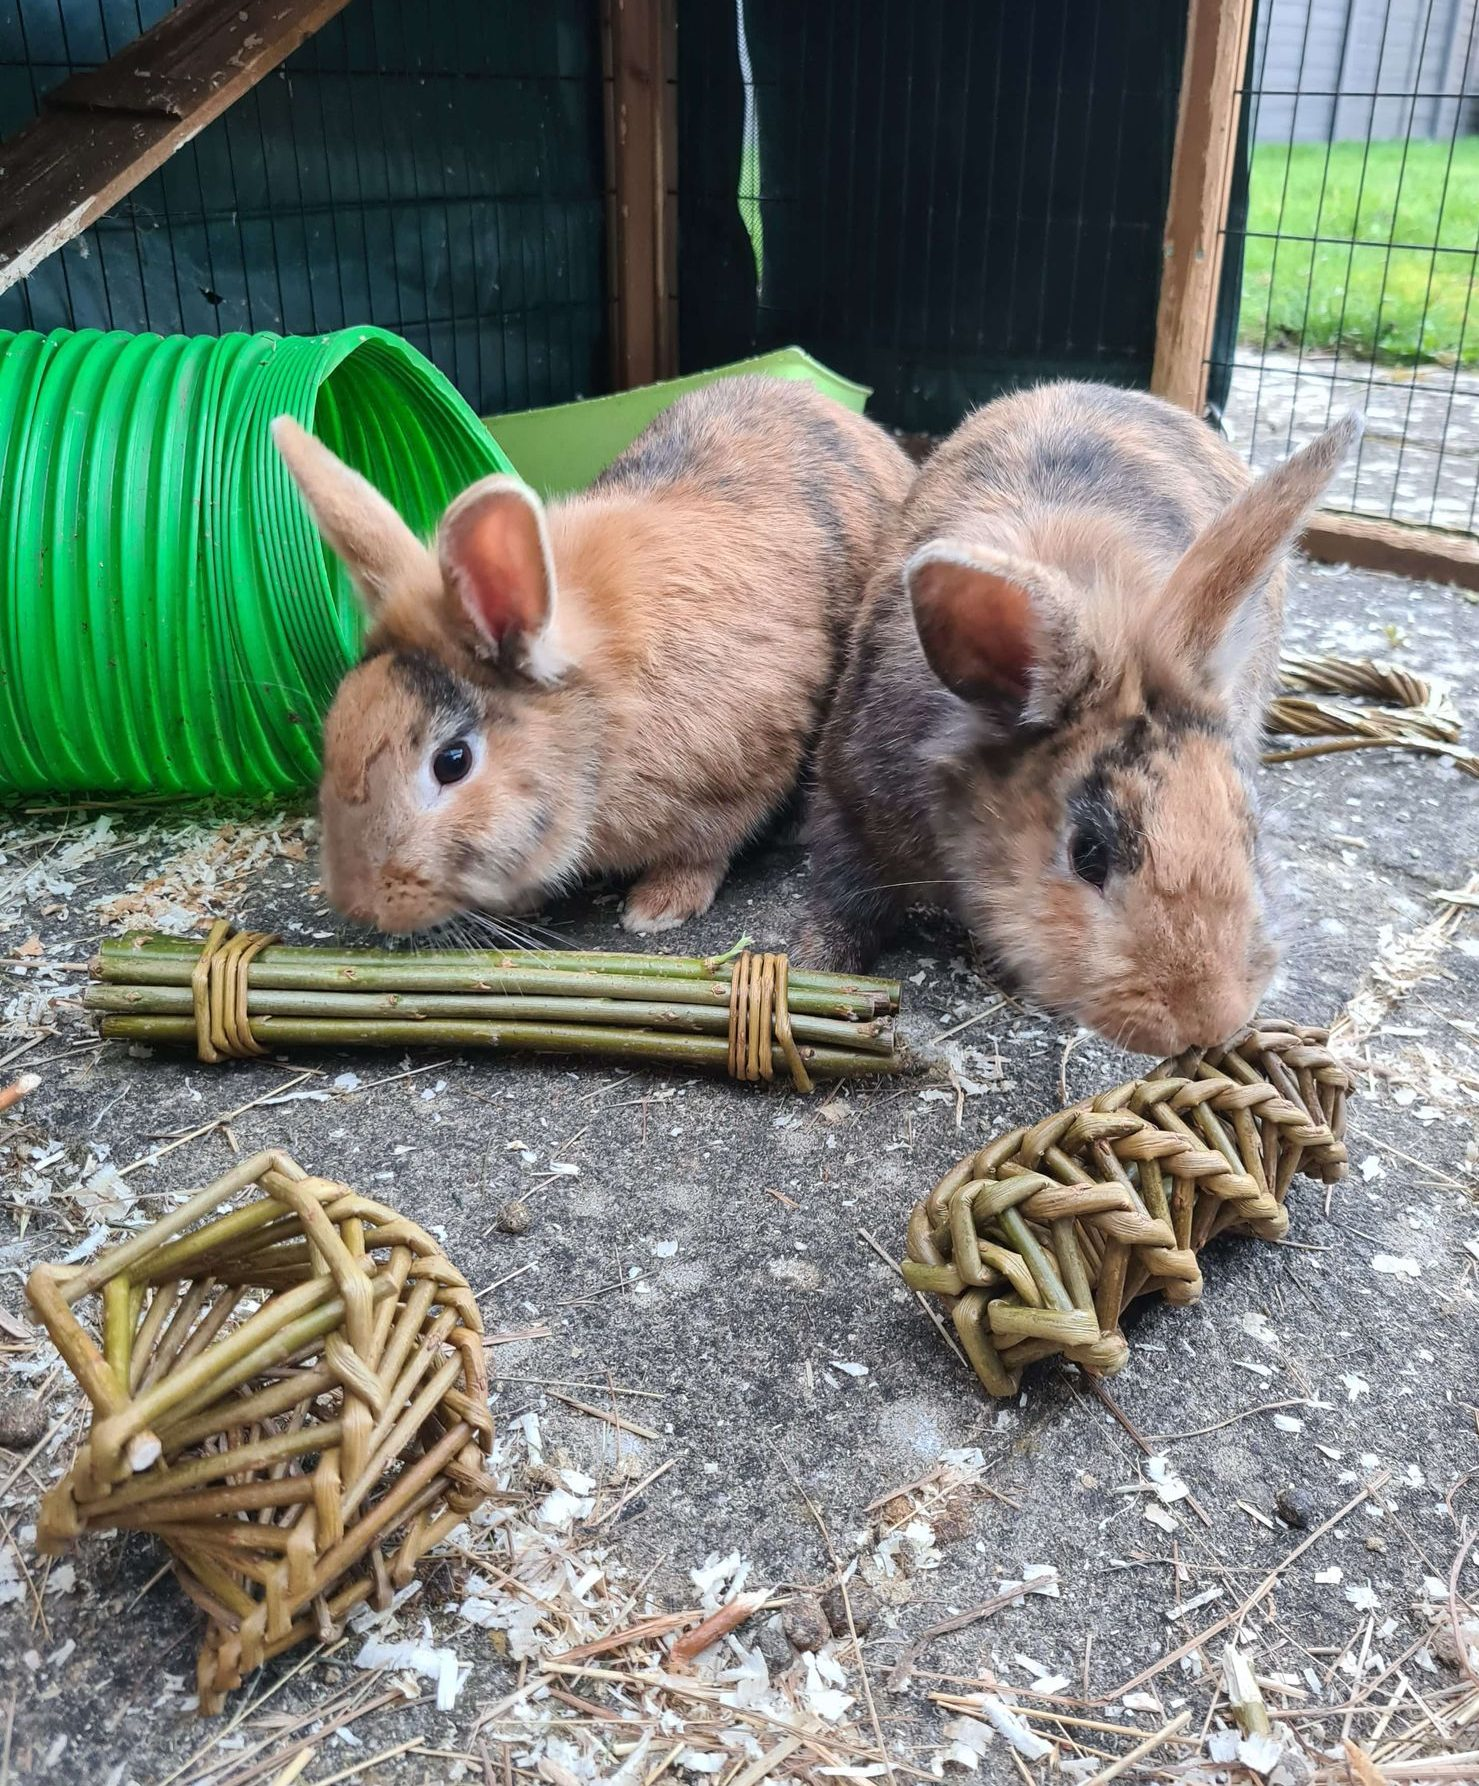 willow toys being enjoyed by rabbits